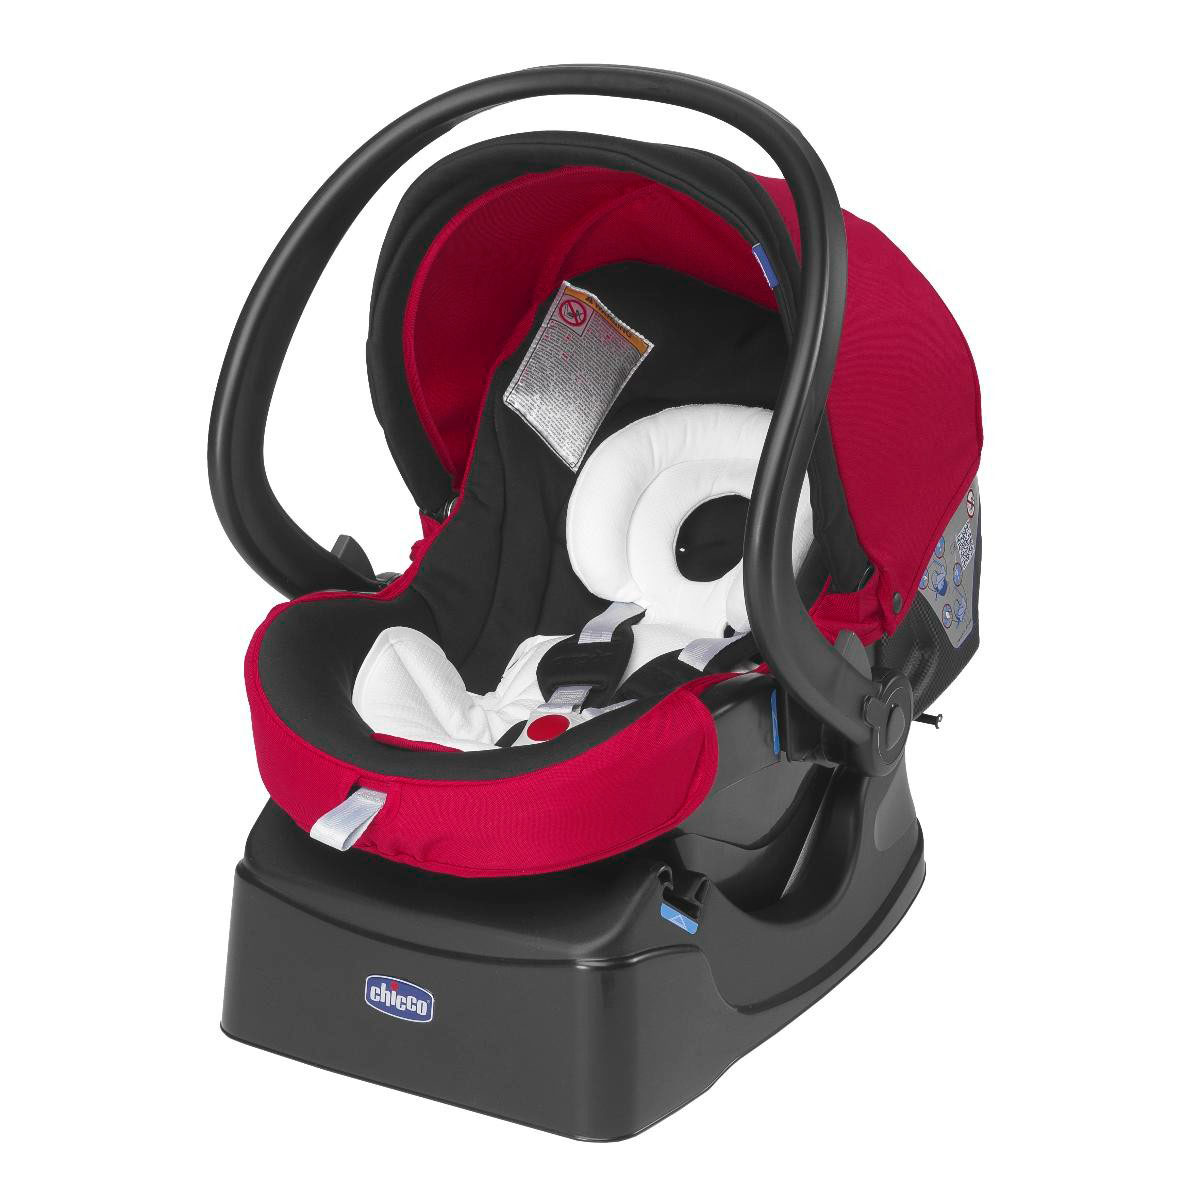 Автокресло Сhicco Auto-Fix Fast Baby Red Mave (Chicco)